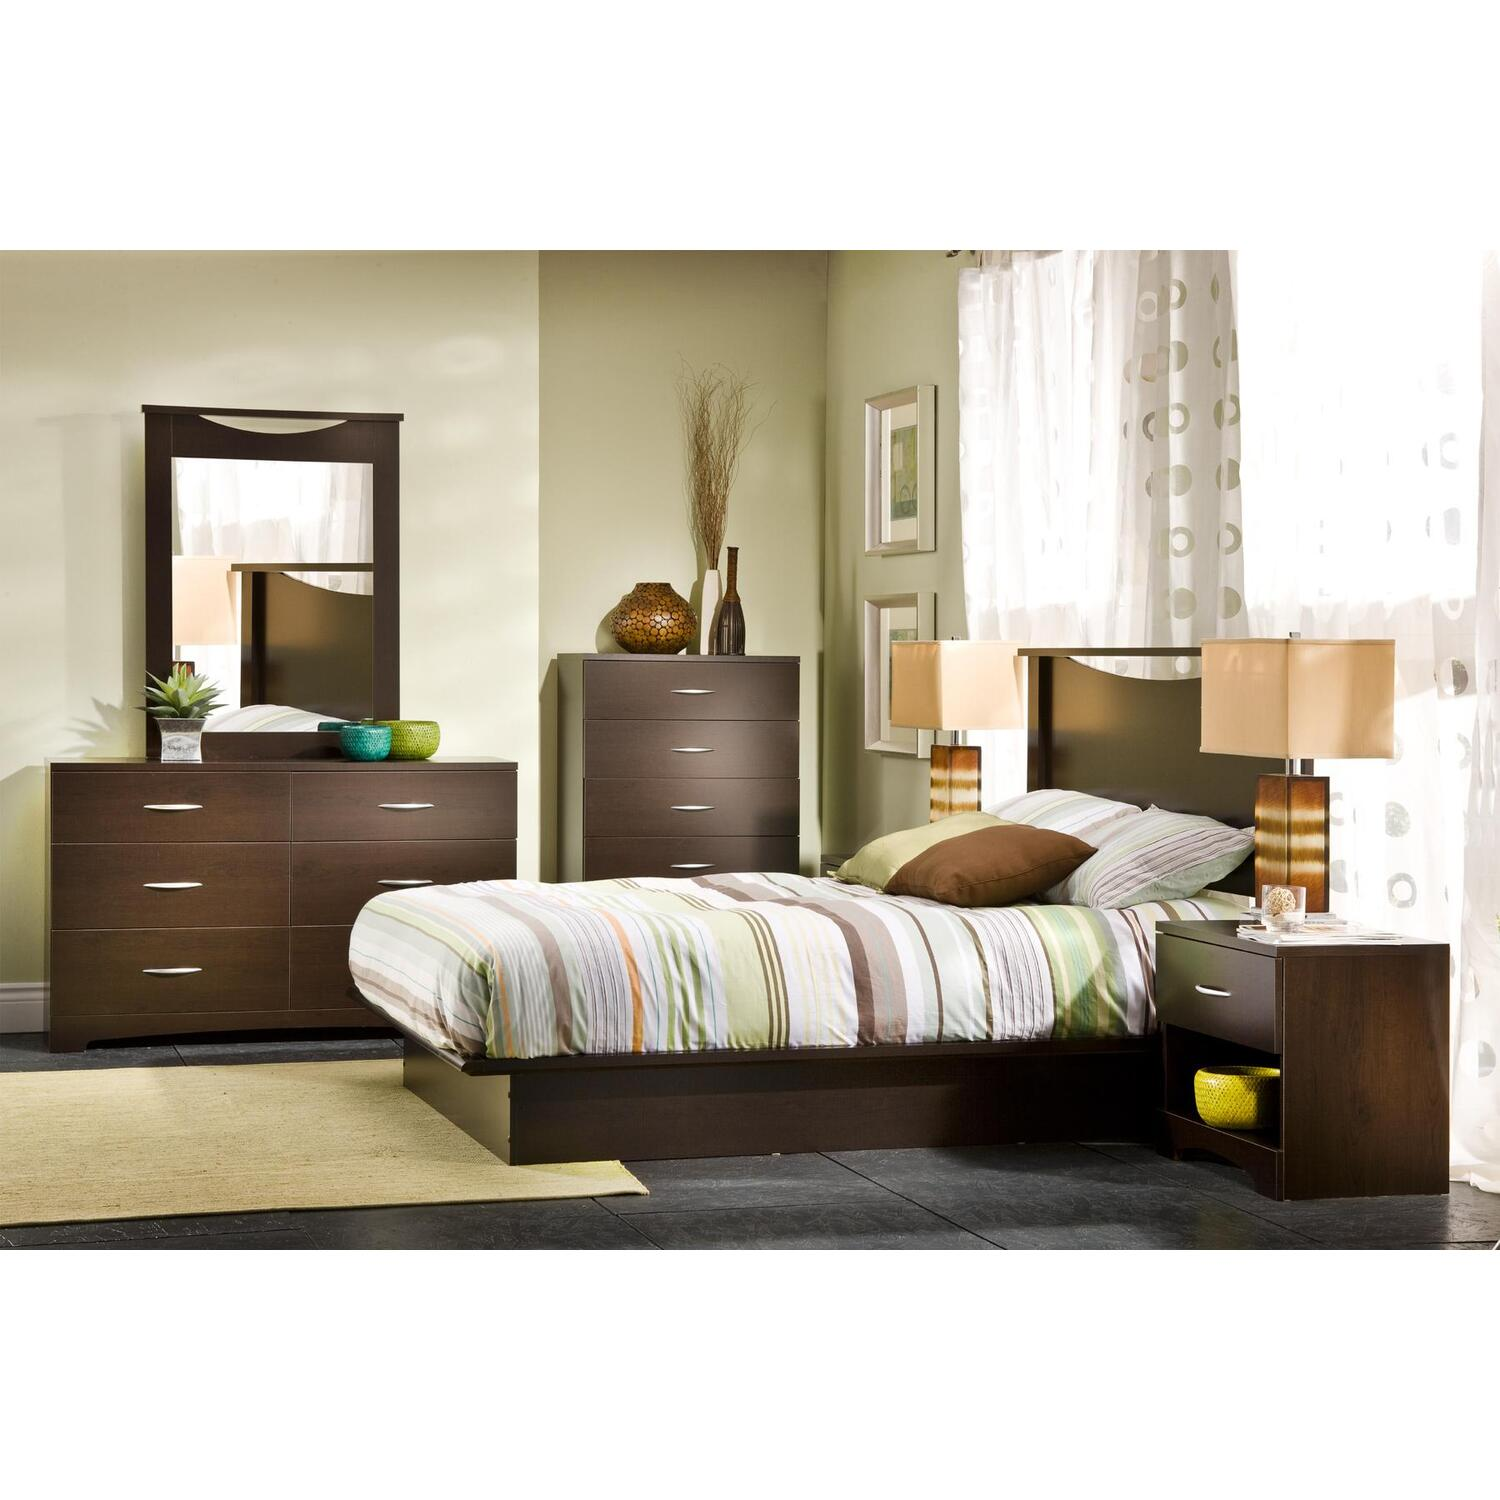 South Shore Back Bay Queen Platform Piece Bedroom Set By Oj. 7 Piece Bedroom Set   Interior Design